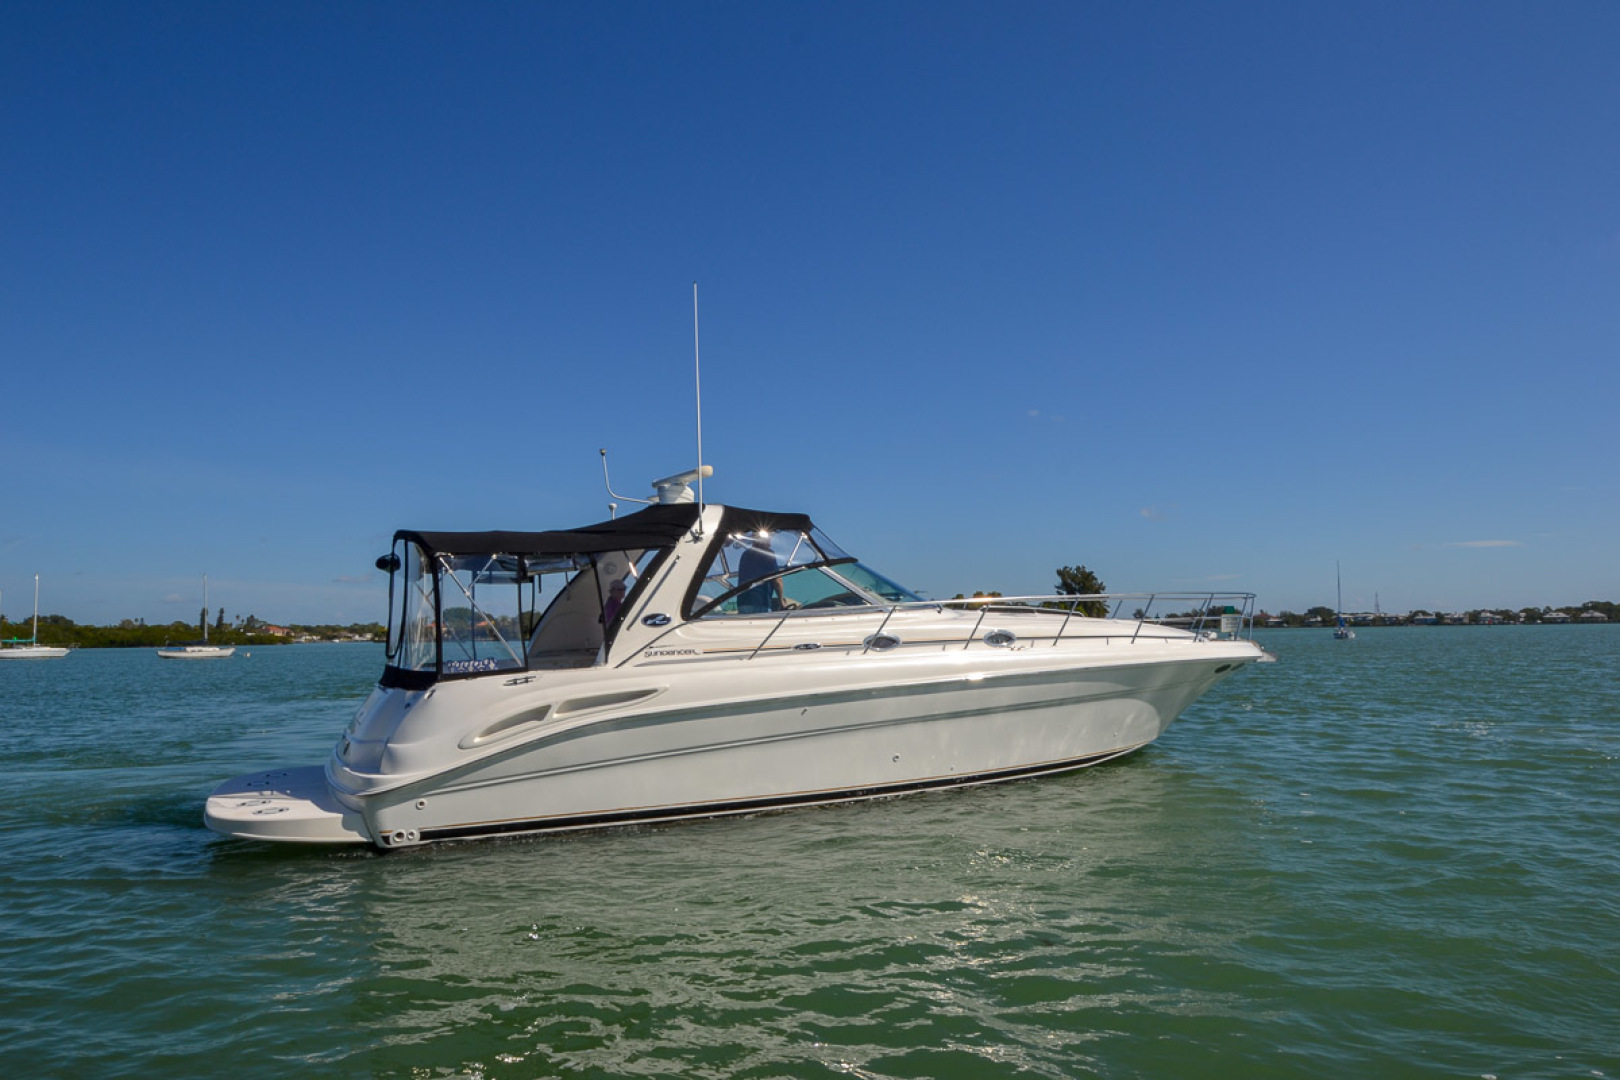 2000 Sea Ray 410 Sundancer-11.jpg